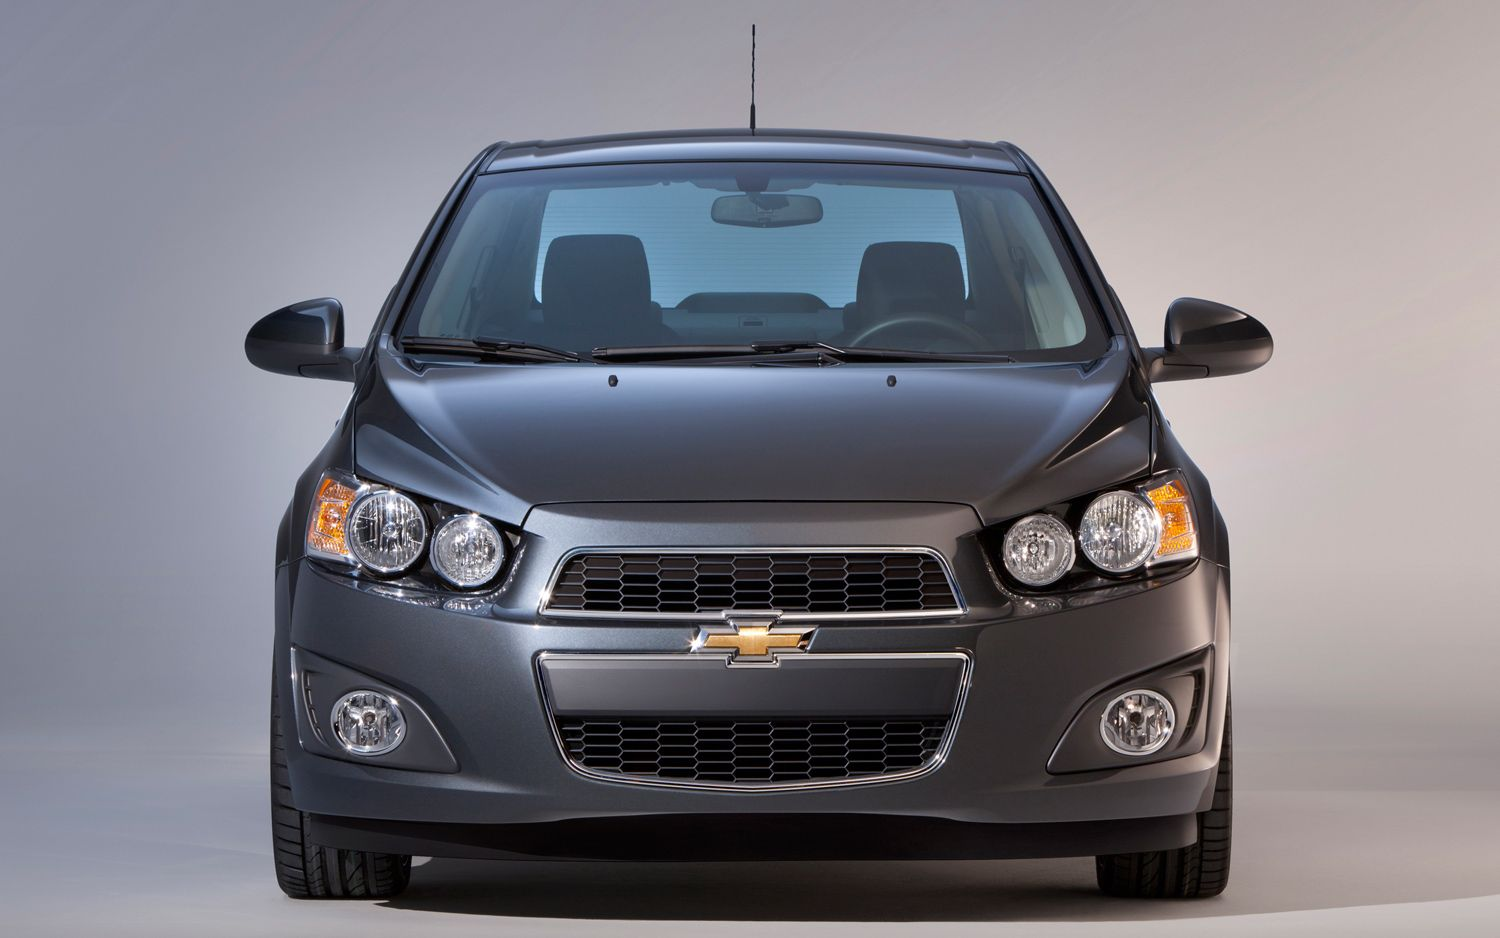 2012 Chevrolet Sonic Sedan Front Profile1